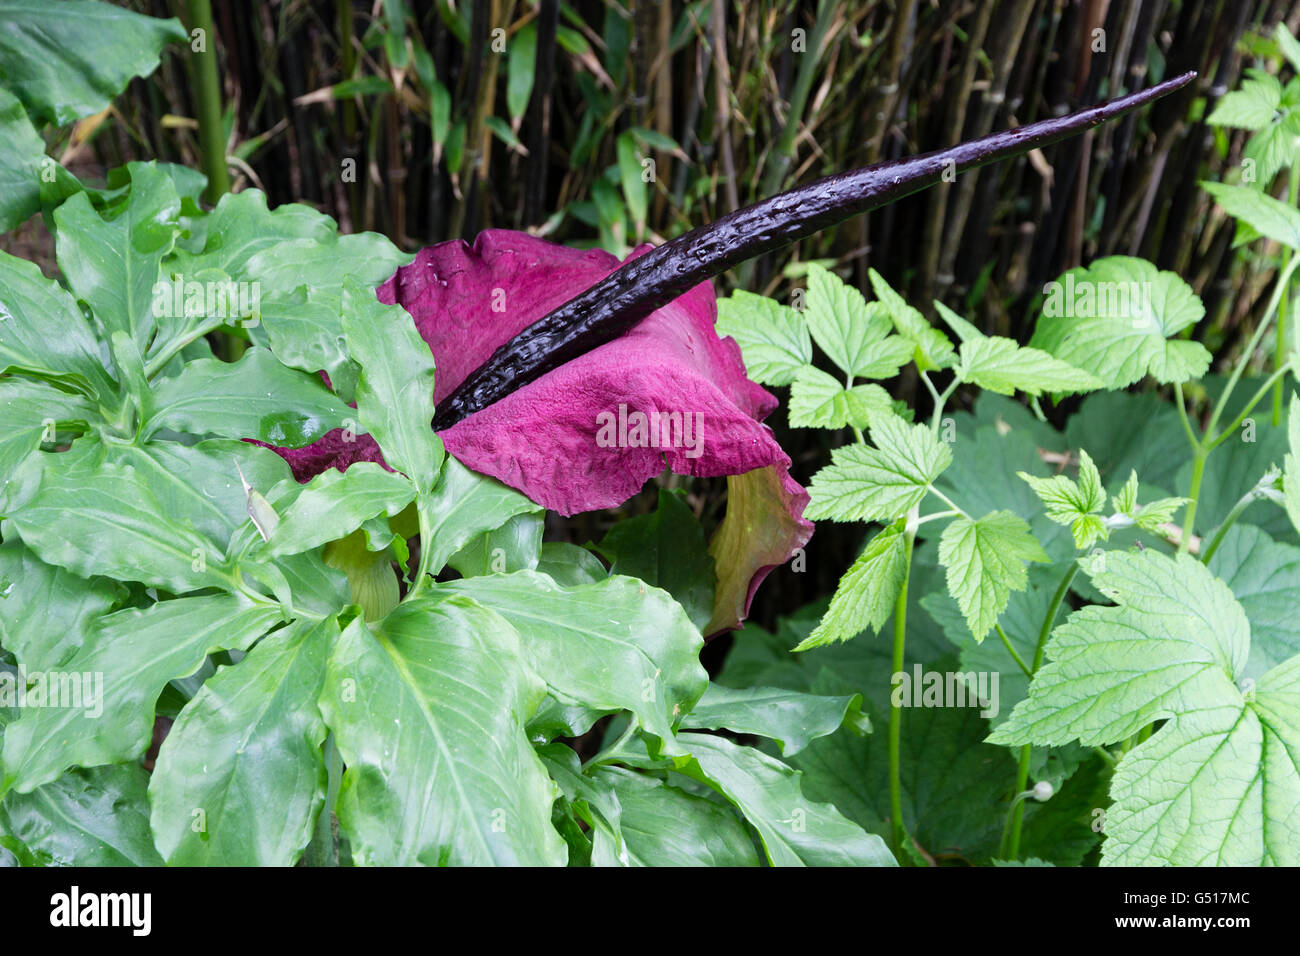 Red spathe and black spadix of the foul smelling dragon arum, Dracunculus vulgaris Stock Photo